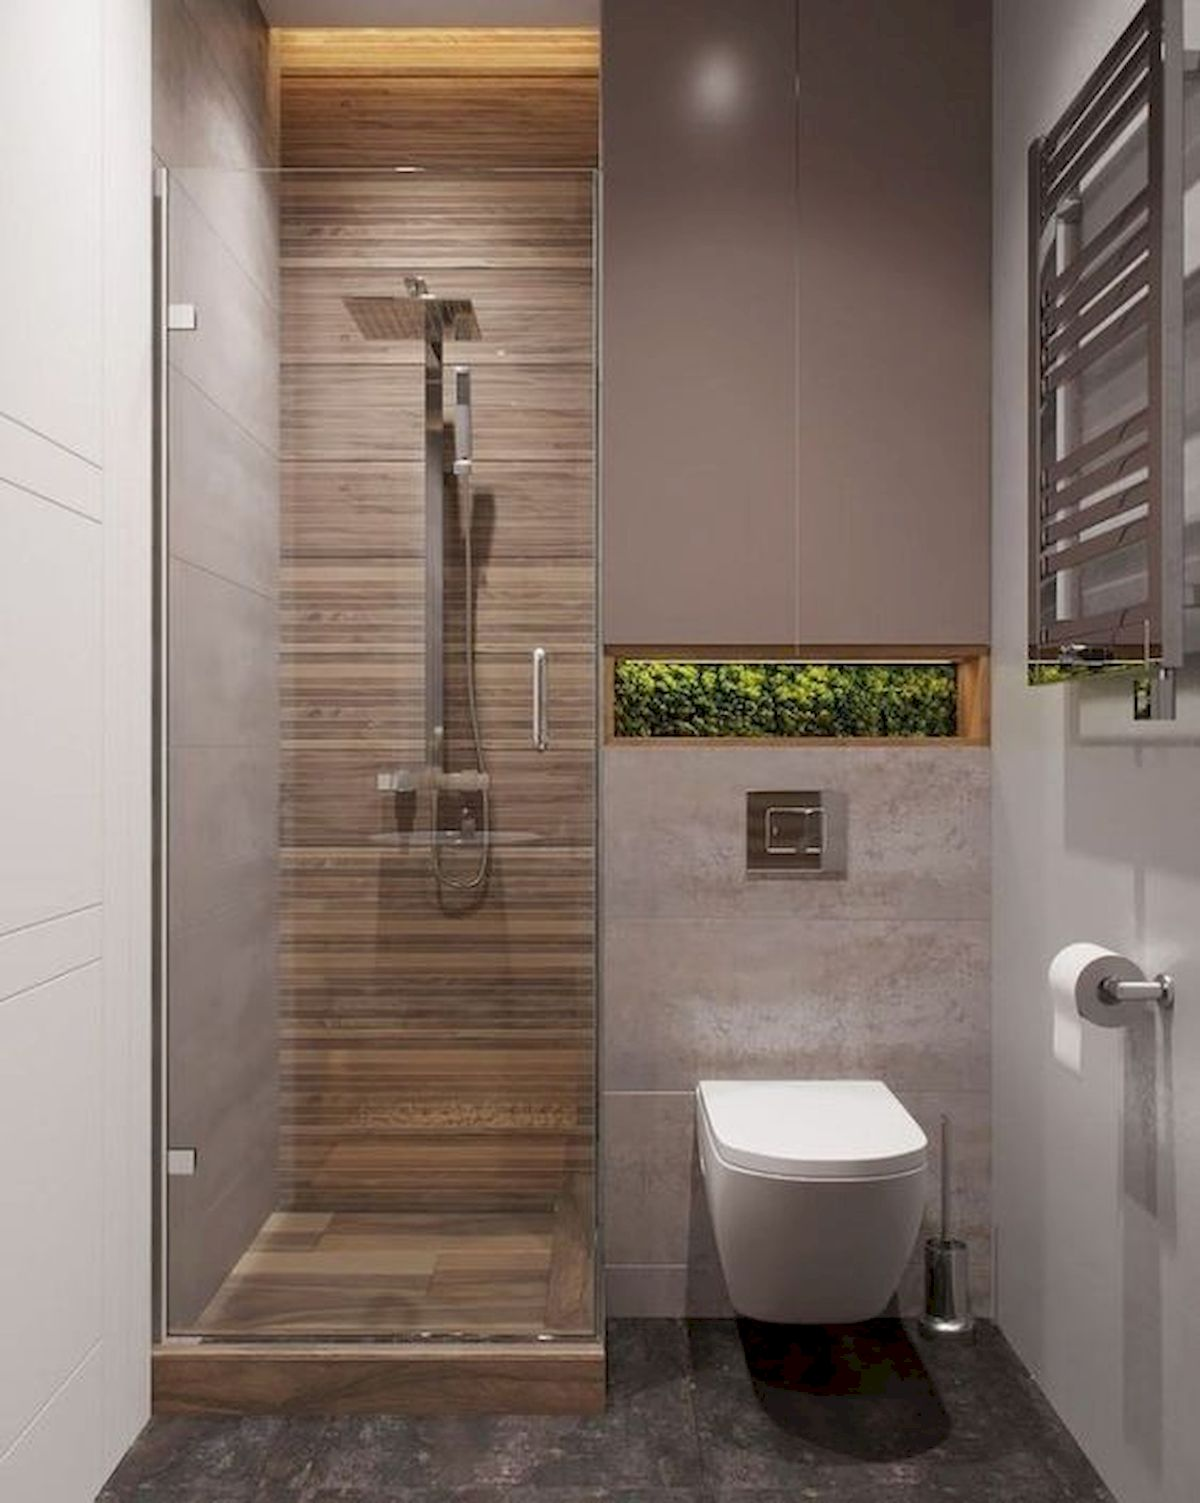 50 Cozy Bathroom Design Ideas for Small Space in Your Home ... on Bathroom Ideas For Small Space  id=87733